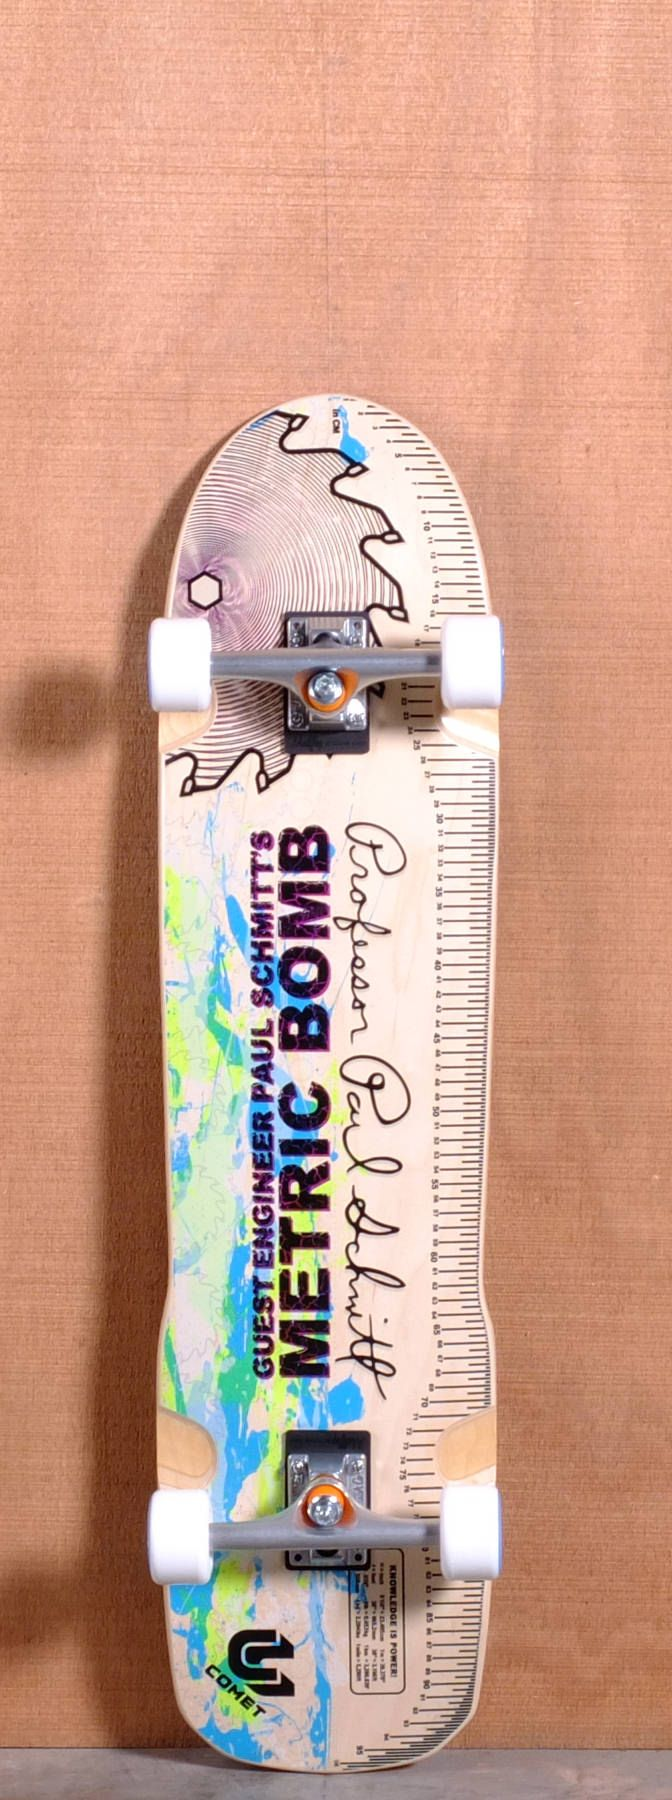 """The Comet Paul Schmitt Metric Bomb Longboard Deck is designed for freeride, Sliding and Pool skating. Ships fully assembled and ready to skate!  Function: Freeride, Sliding, Pool  Features: Concave, Rocker, Symmetrical Platform, Upturned Nose, Kicktail, Wheel Wells  Material: Air-Frame Construction, Corrugated Maple Ply  Length: 38""""  Width: 9.25""""  Wheelbase: 20""""  Thickness: 9/16""""  Hole Pattern: Old School  Grip: None"""